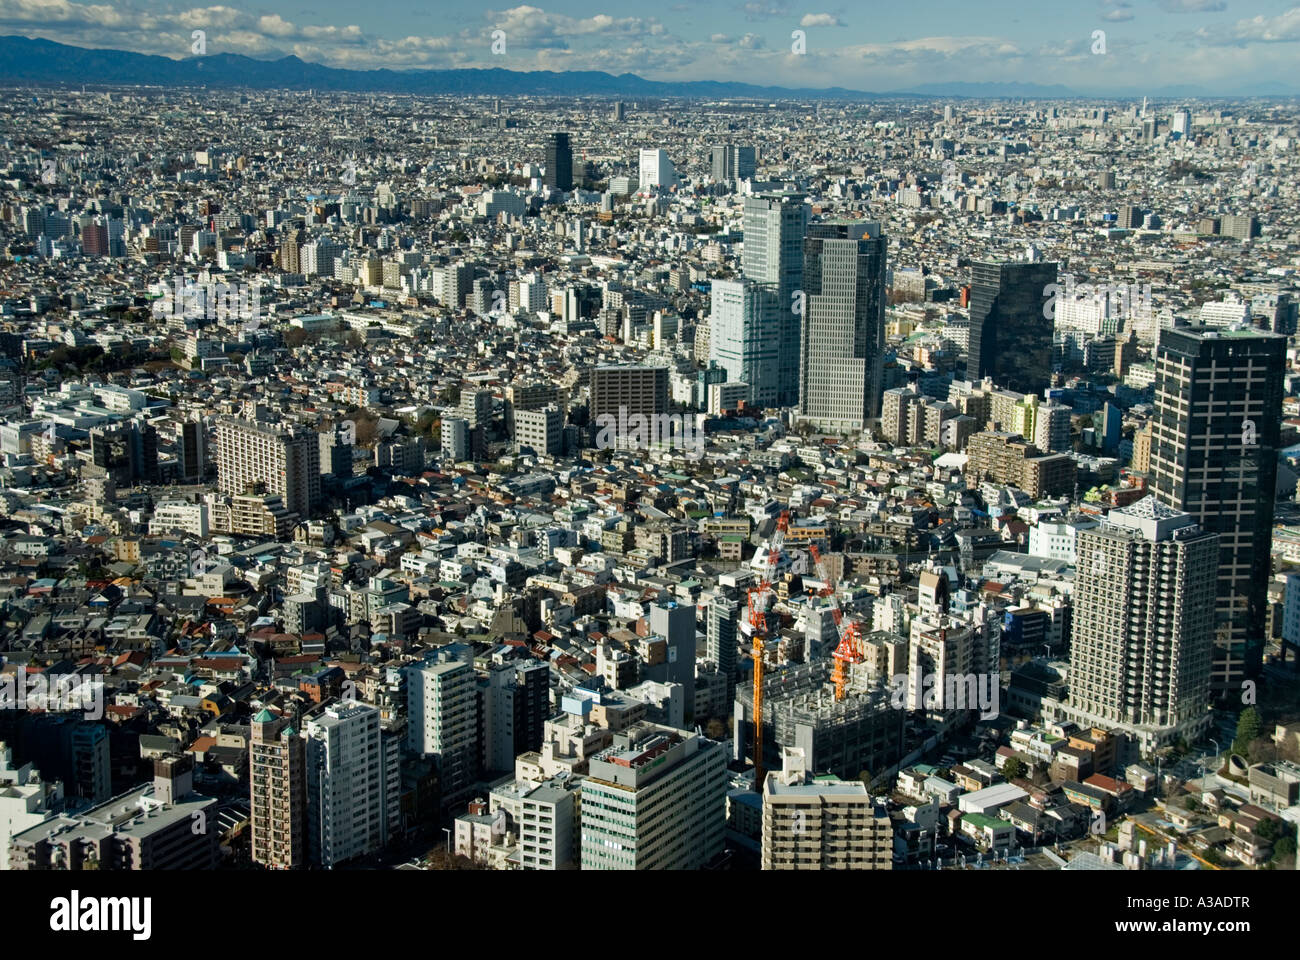 View over Tokyo from top of metropolitan goverment office in Shinjuku district - Stock Image